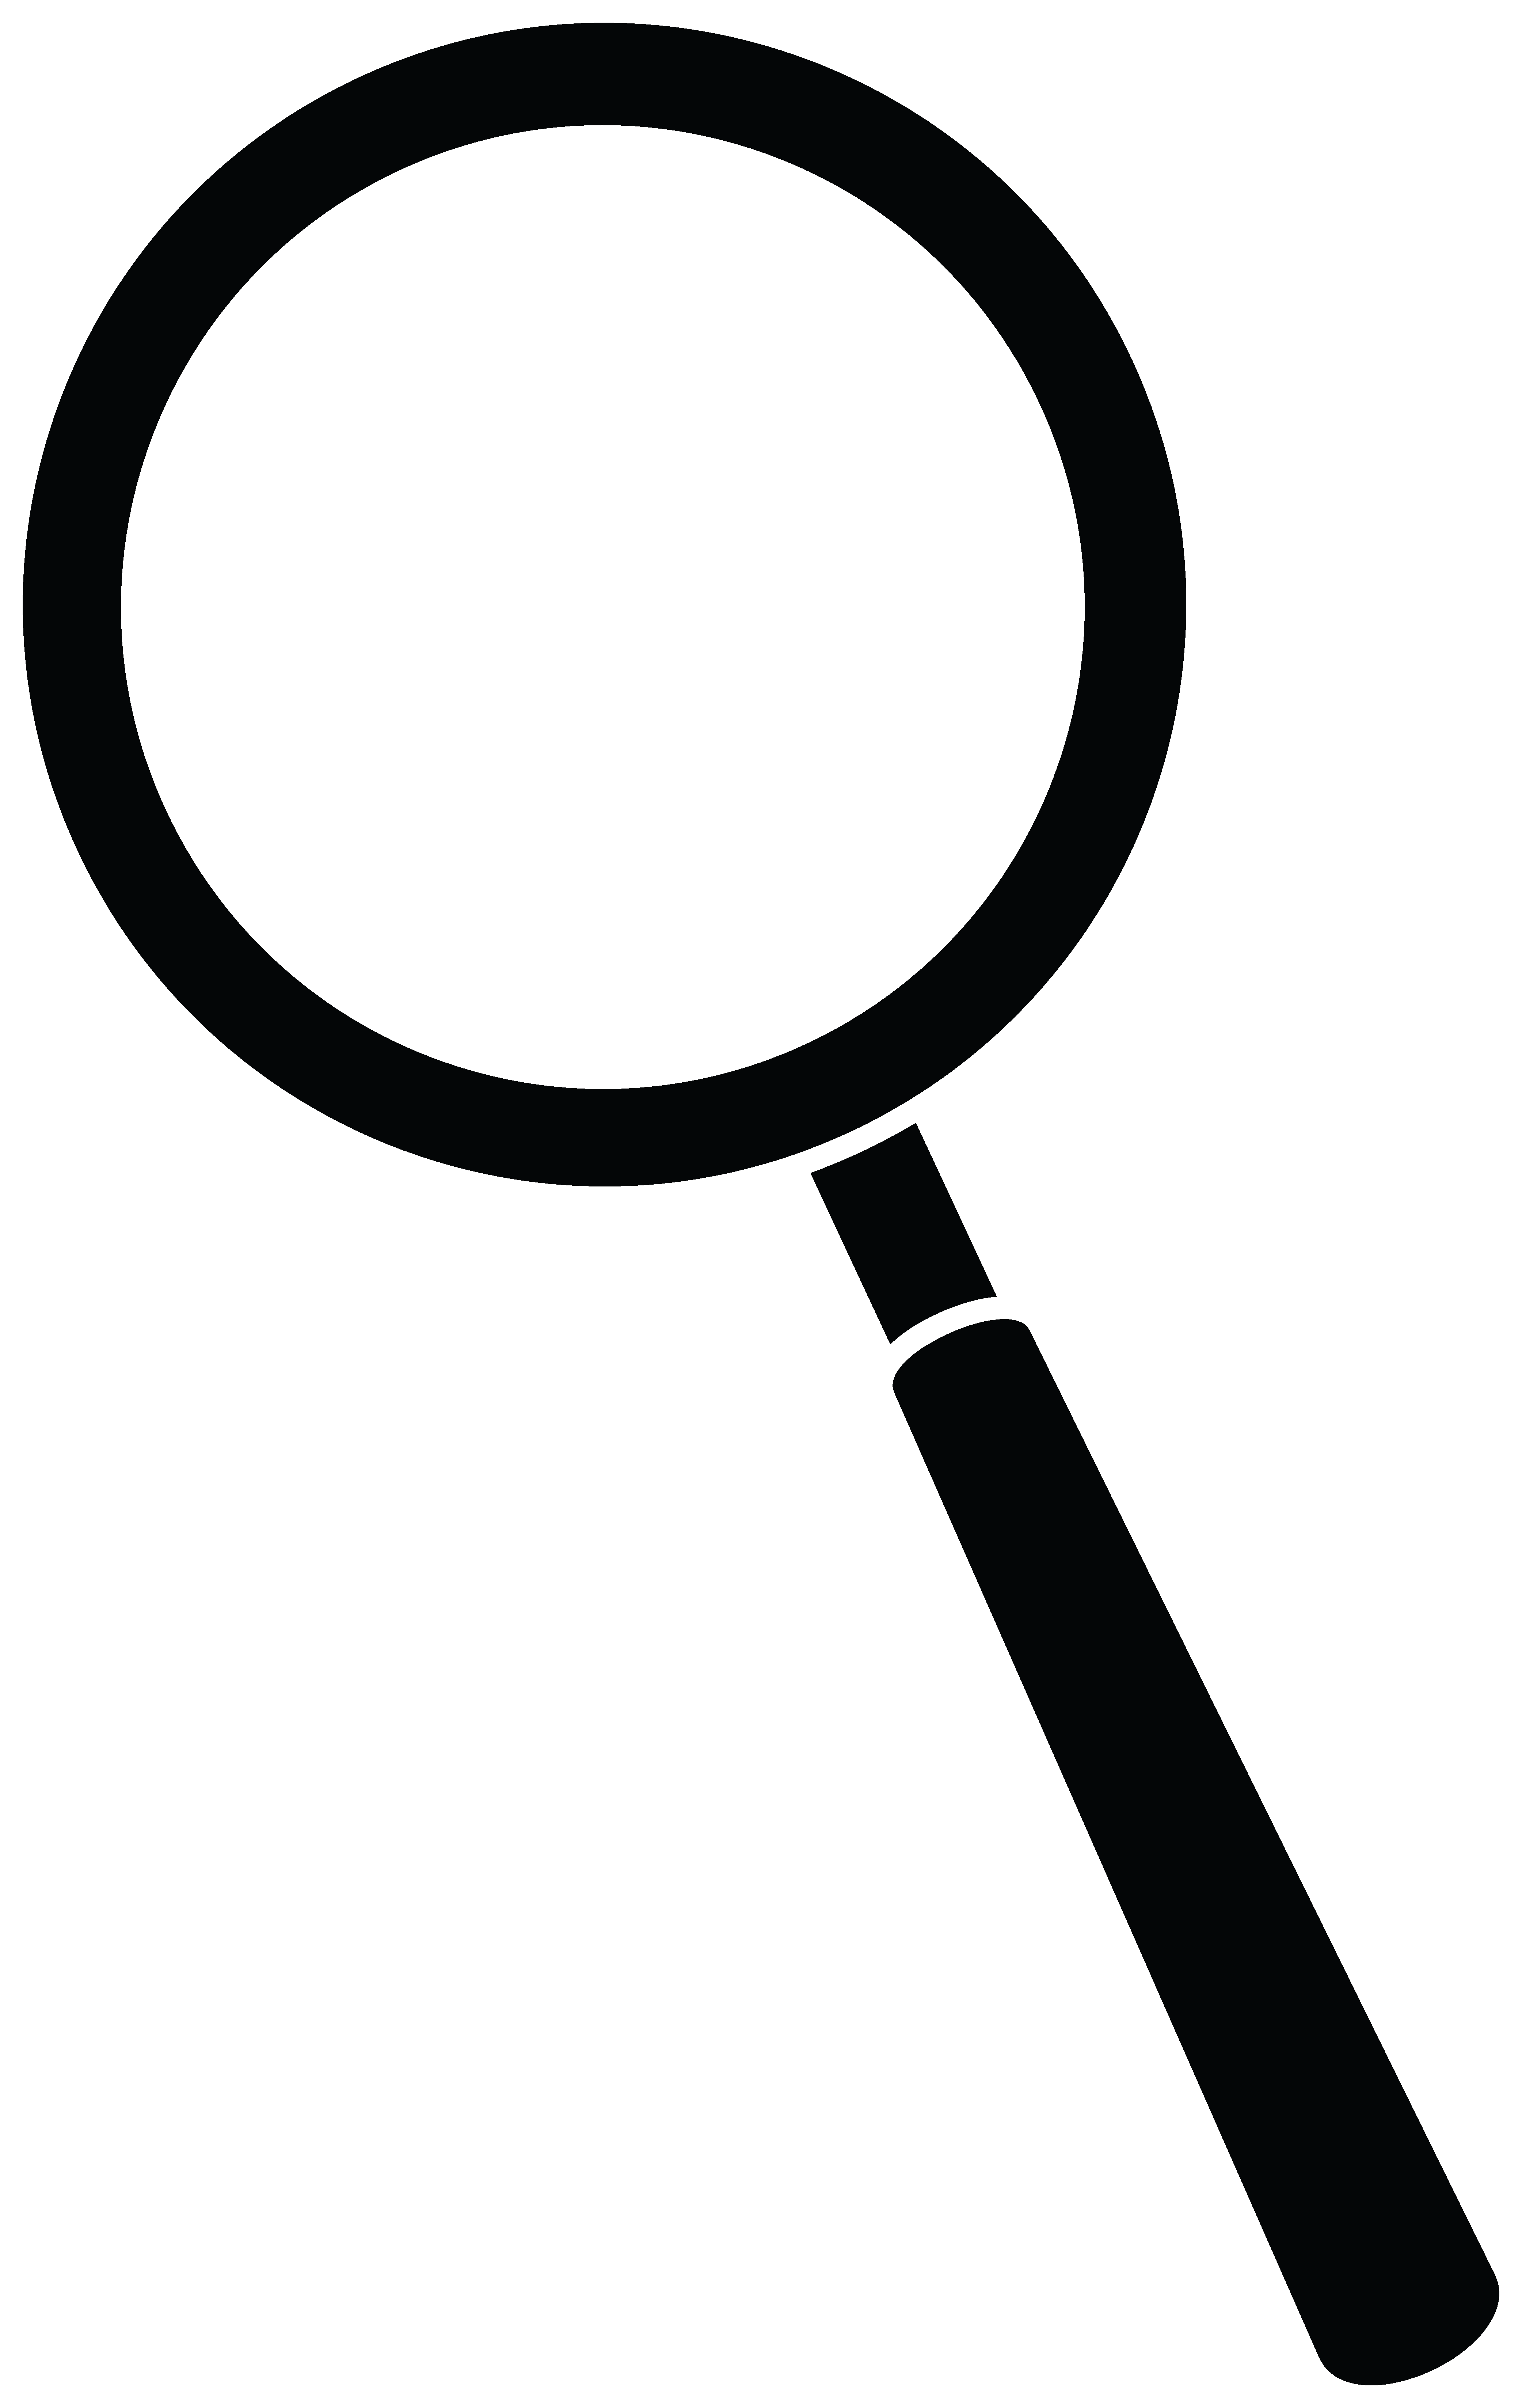 magnifying glass vector free clipart best magnifying glass vector ai magnifying glass vector illustrator